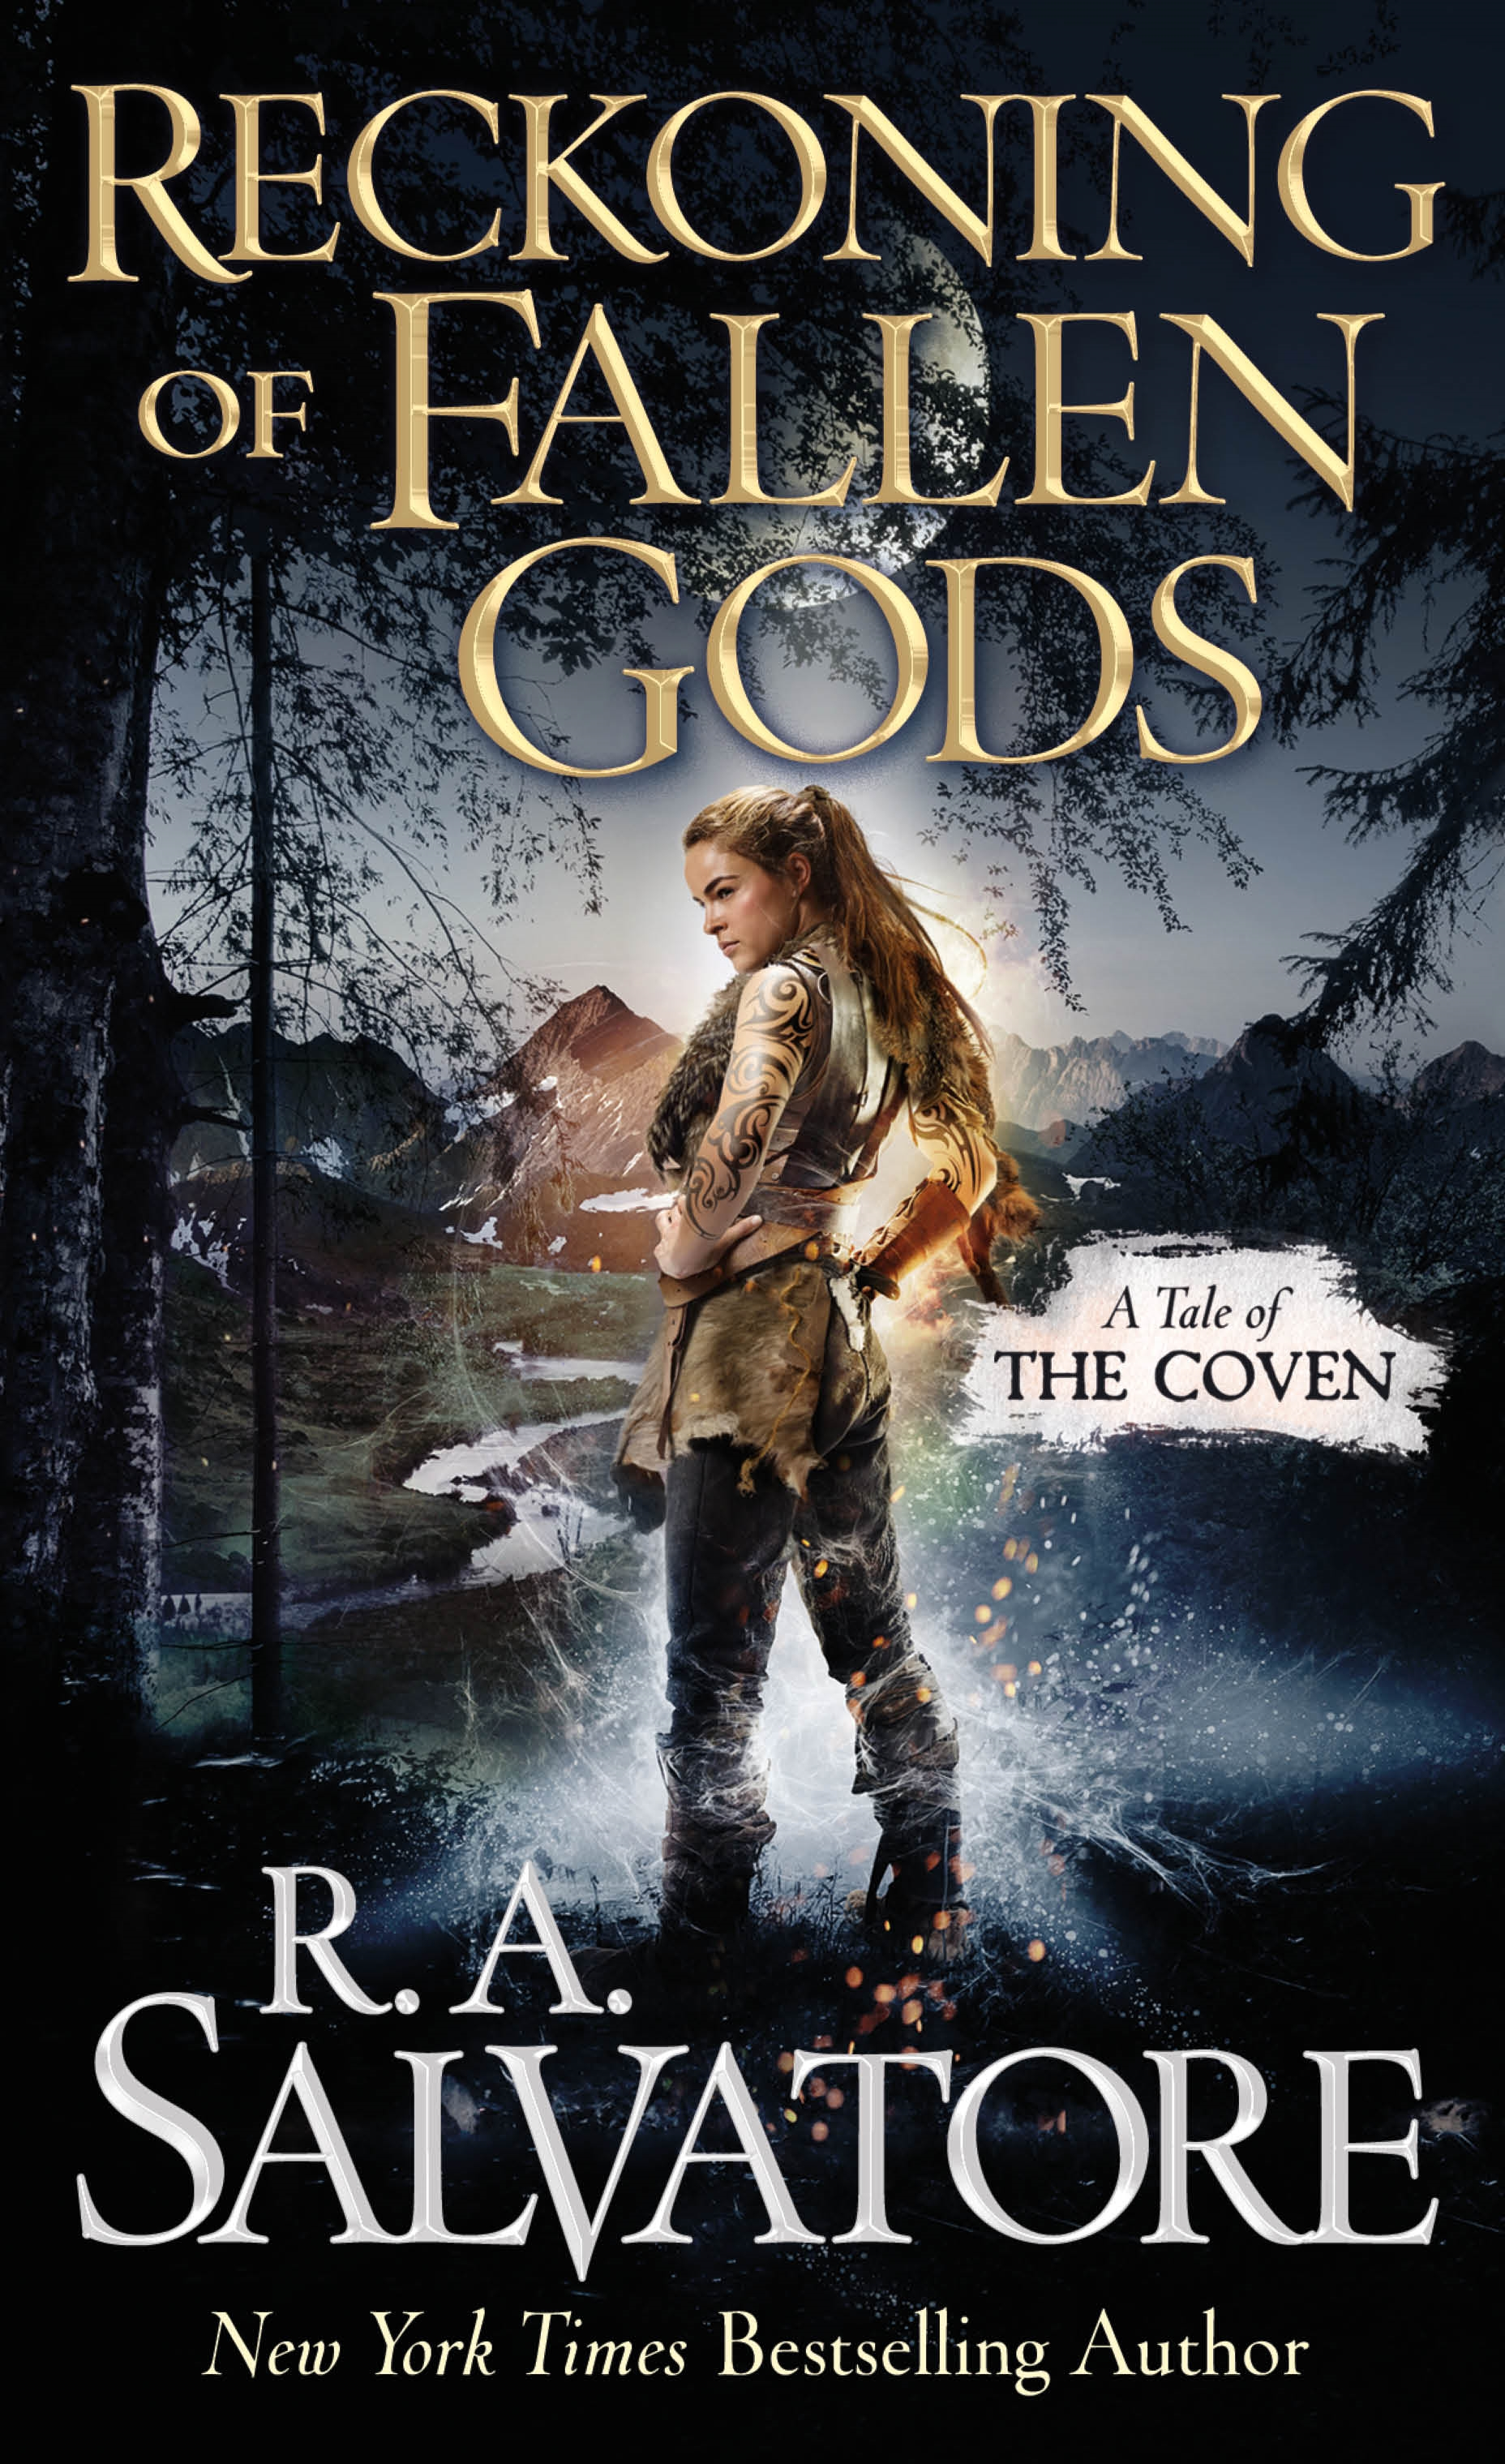 Reckoning of Fallen Gods A Tale of the Coven